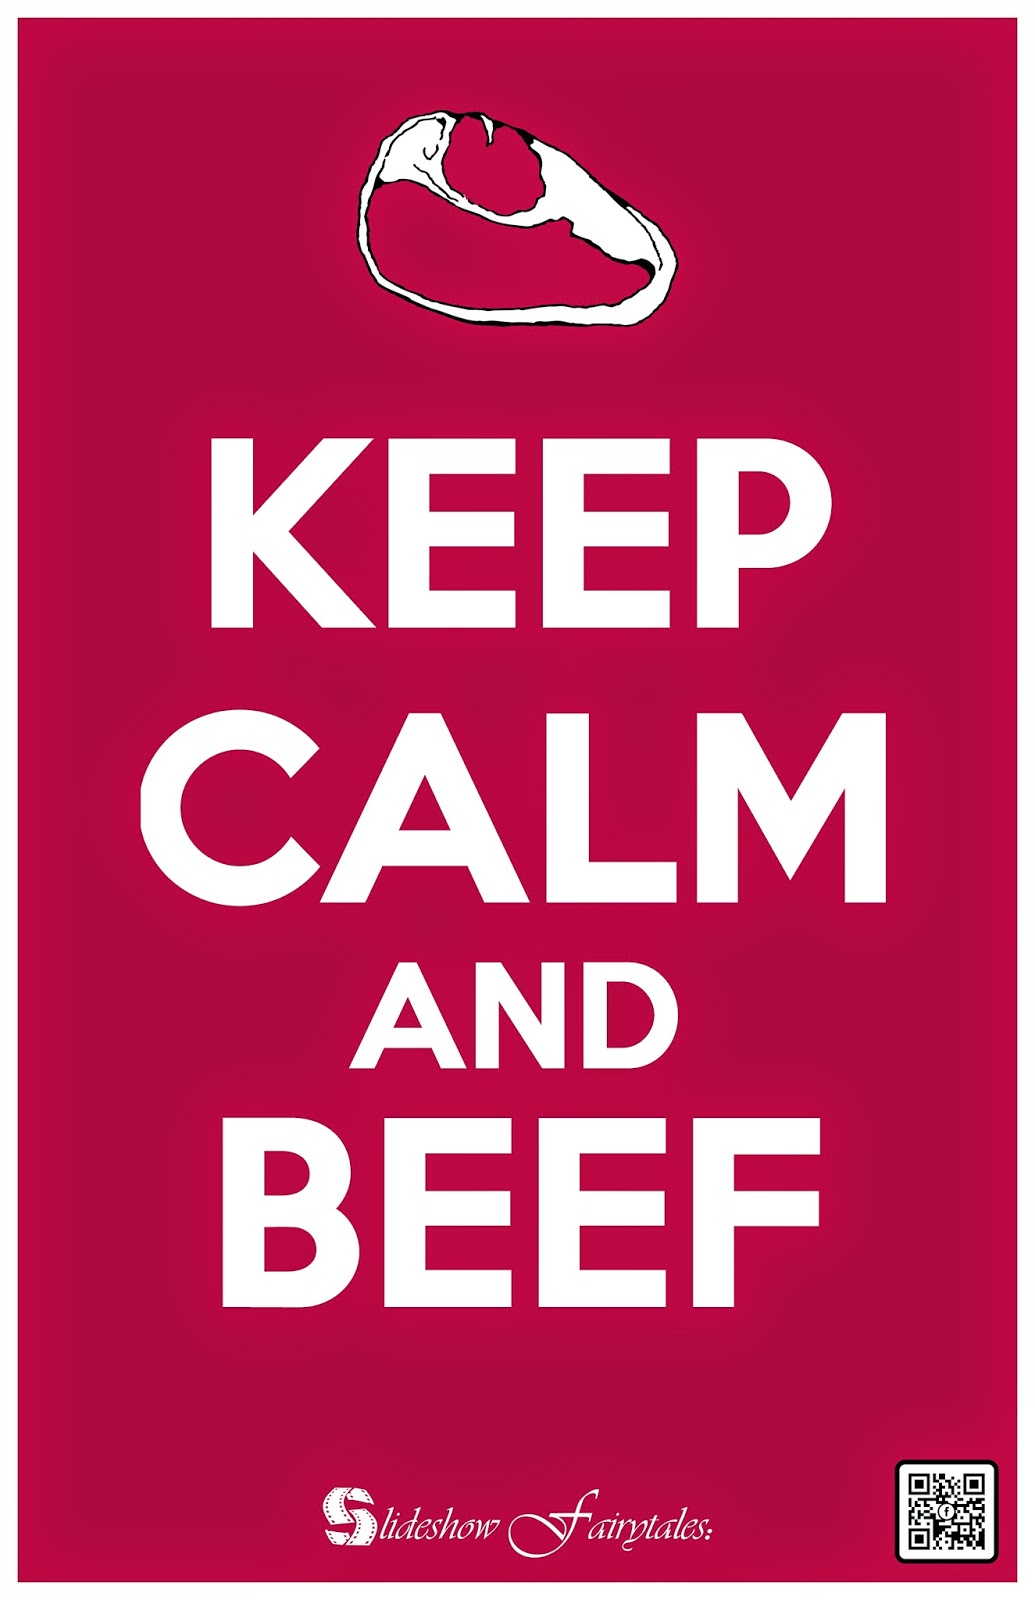 Keep Calm and Beef